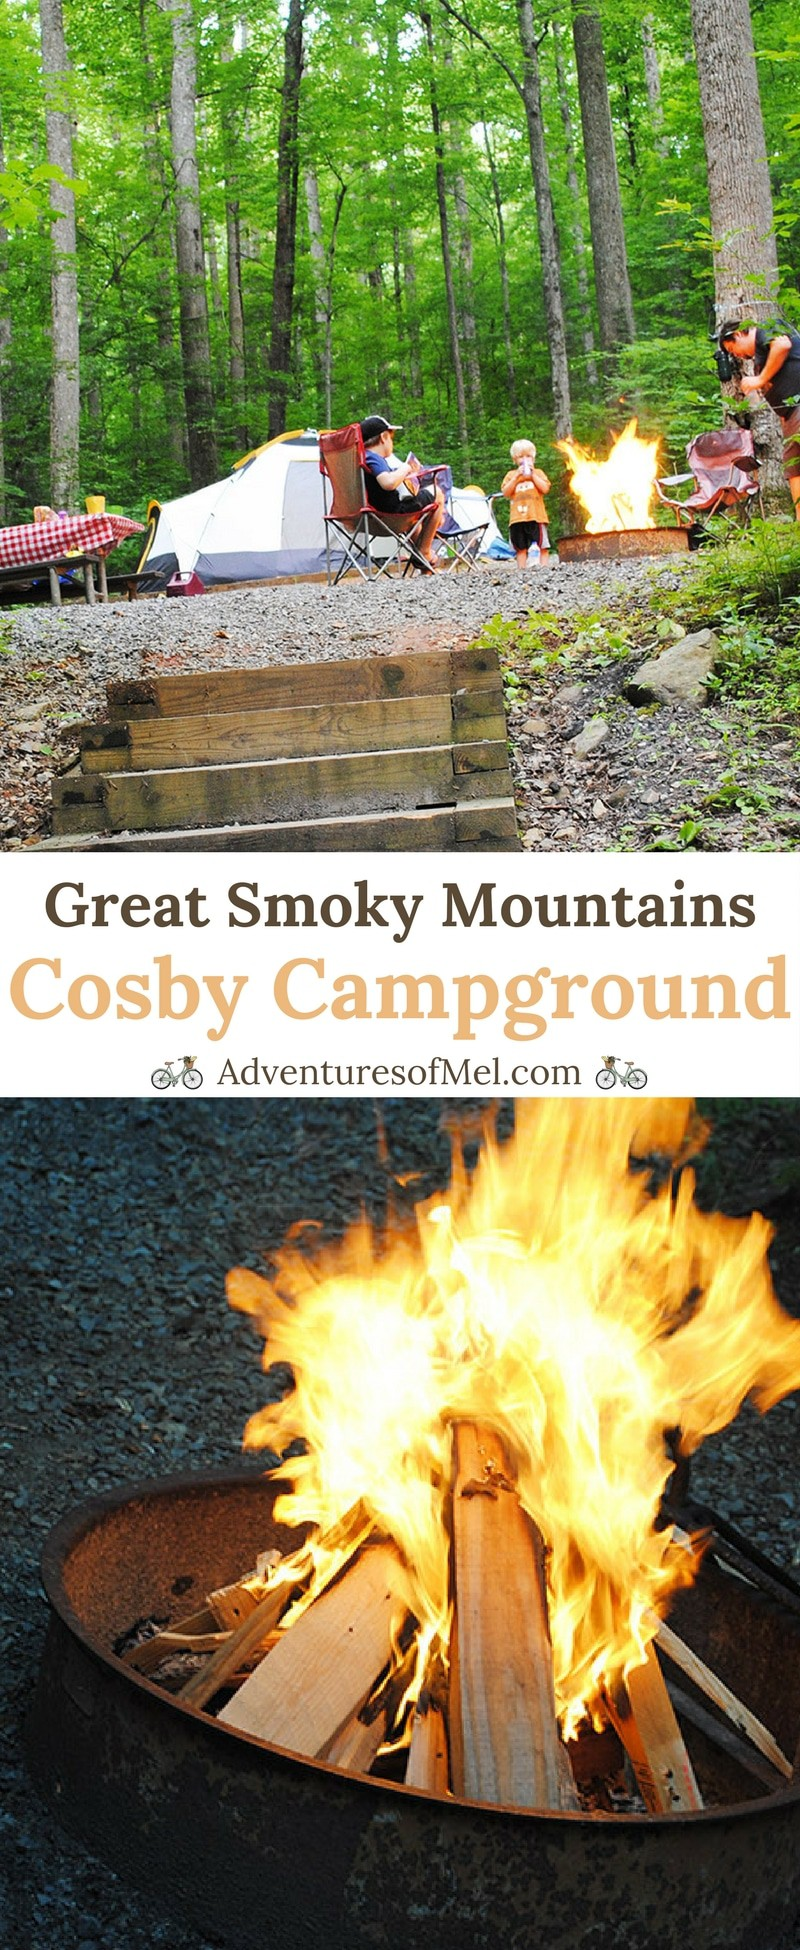 Great Smoky Mountains Cosby Campground